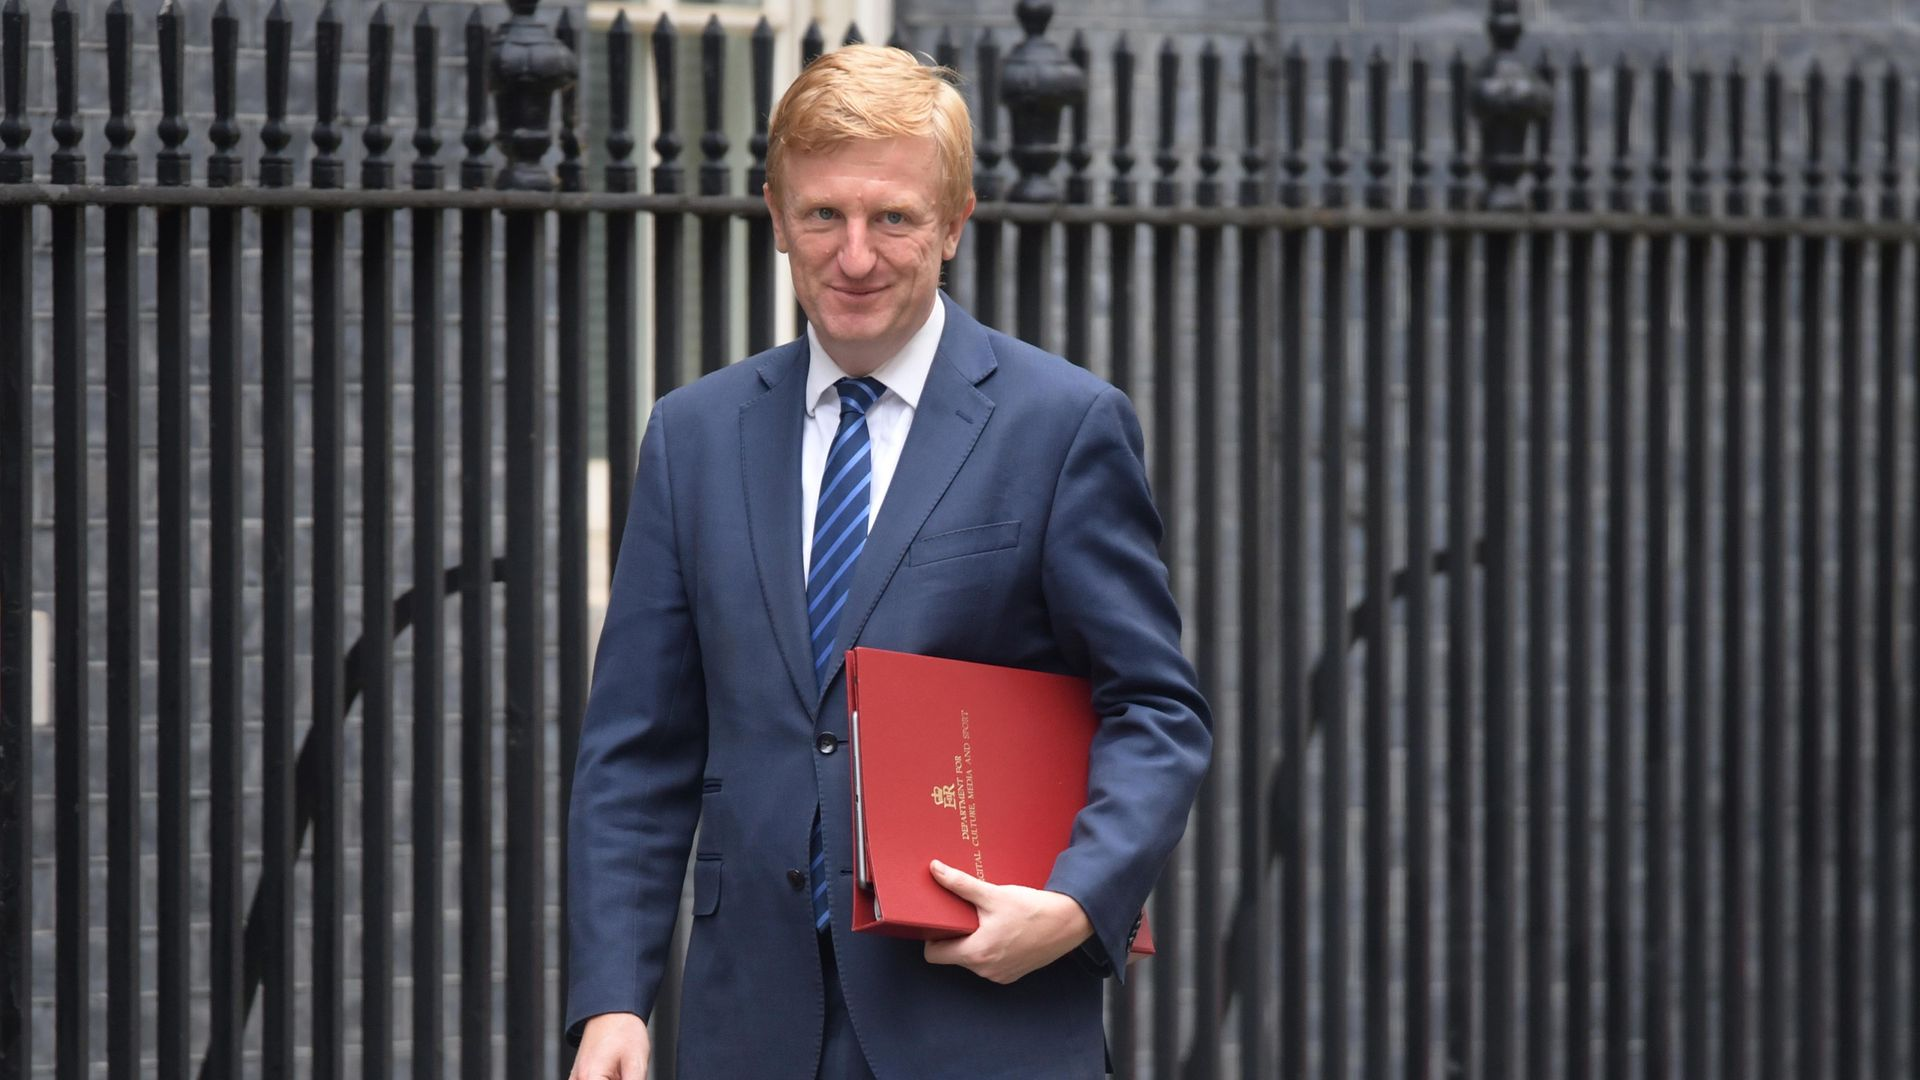 Culture, Media and Sport Secretary, Oliver Dowden in Downing Street in London. - Credit: PA